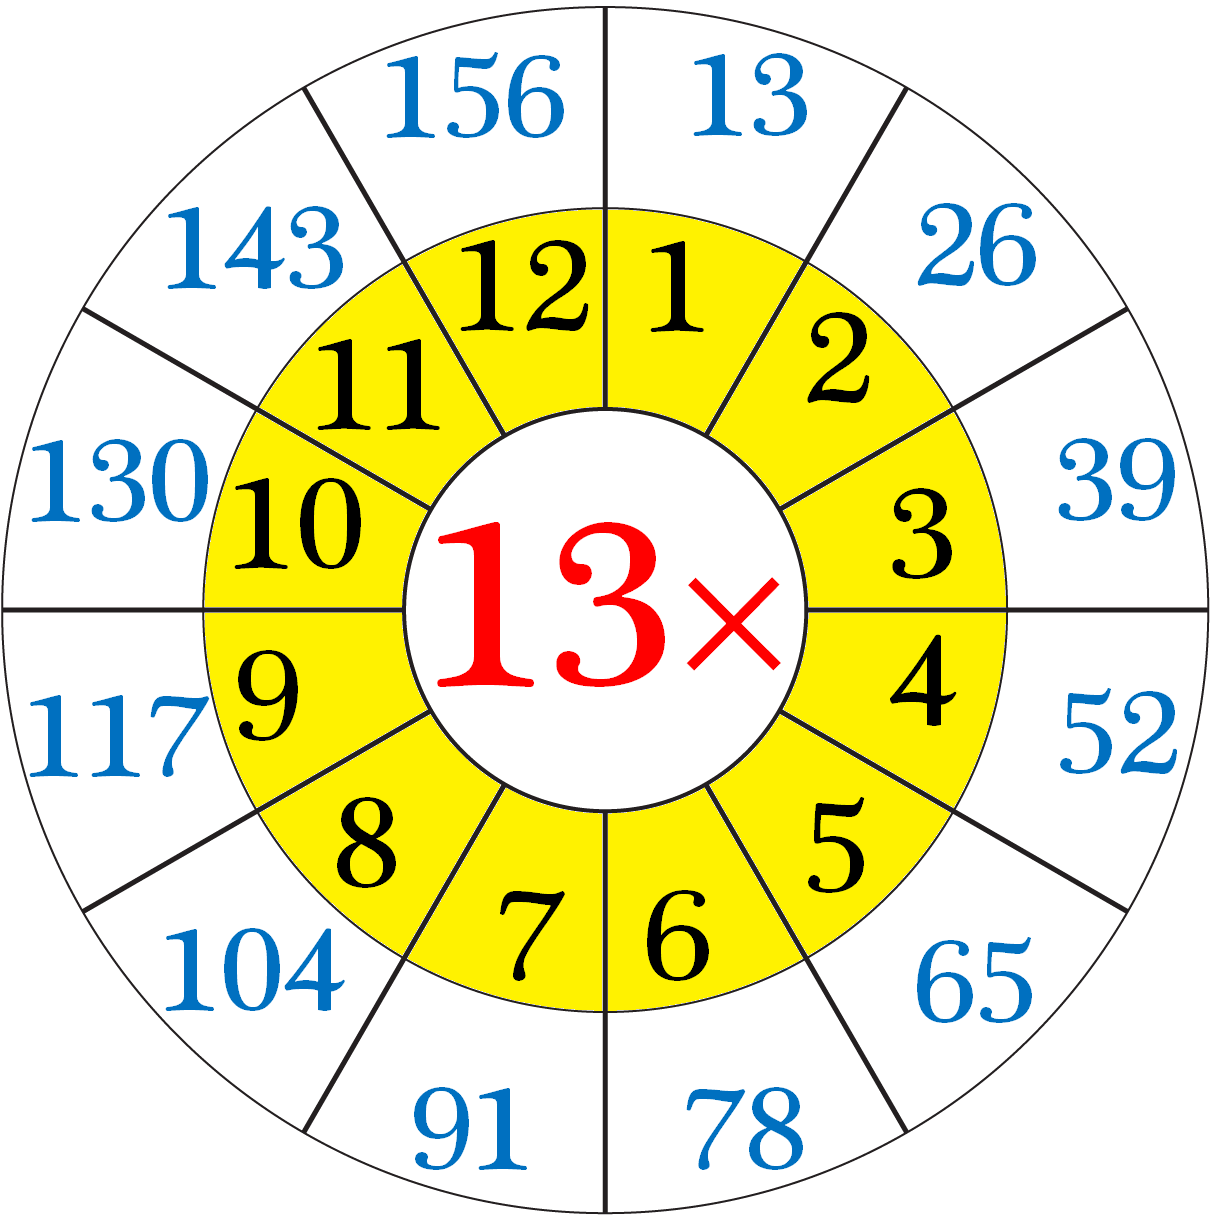 Multiplication Table of 13